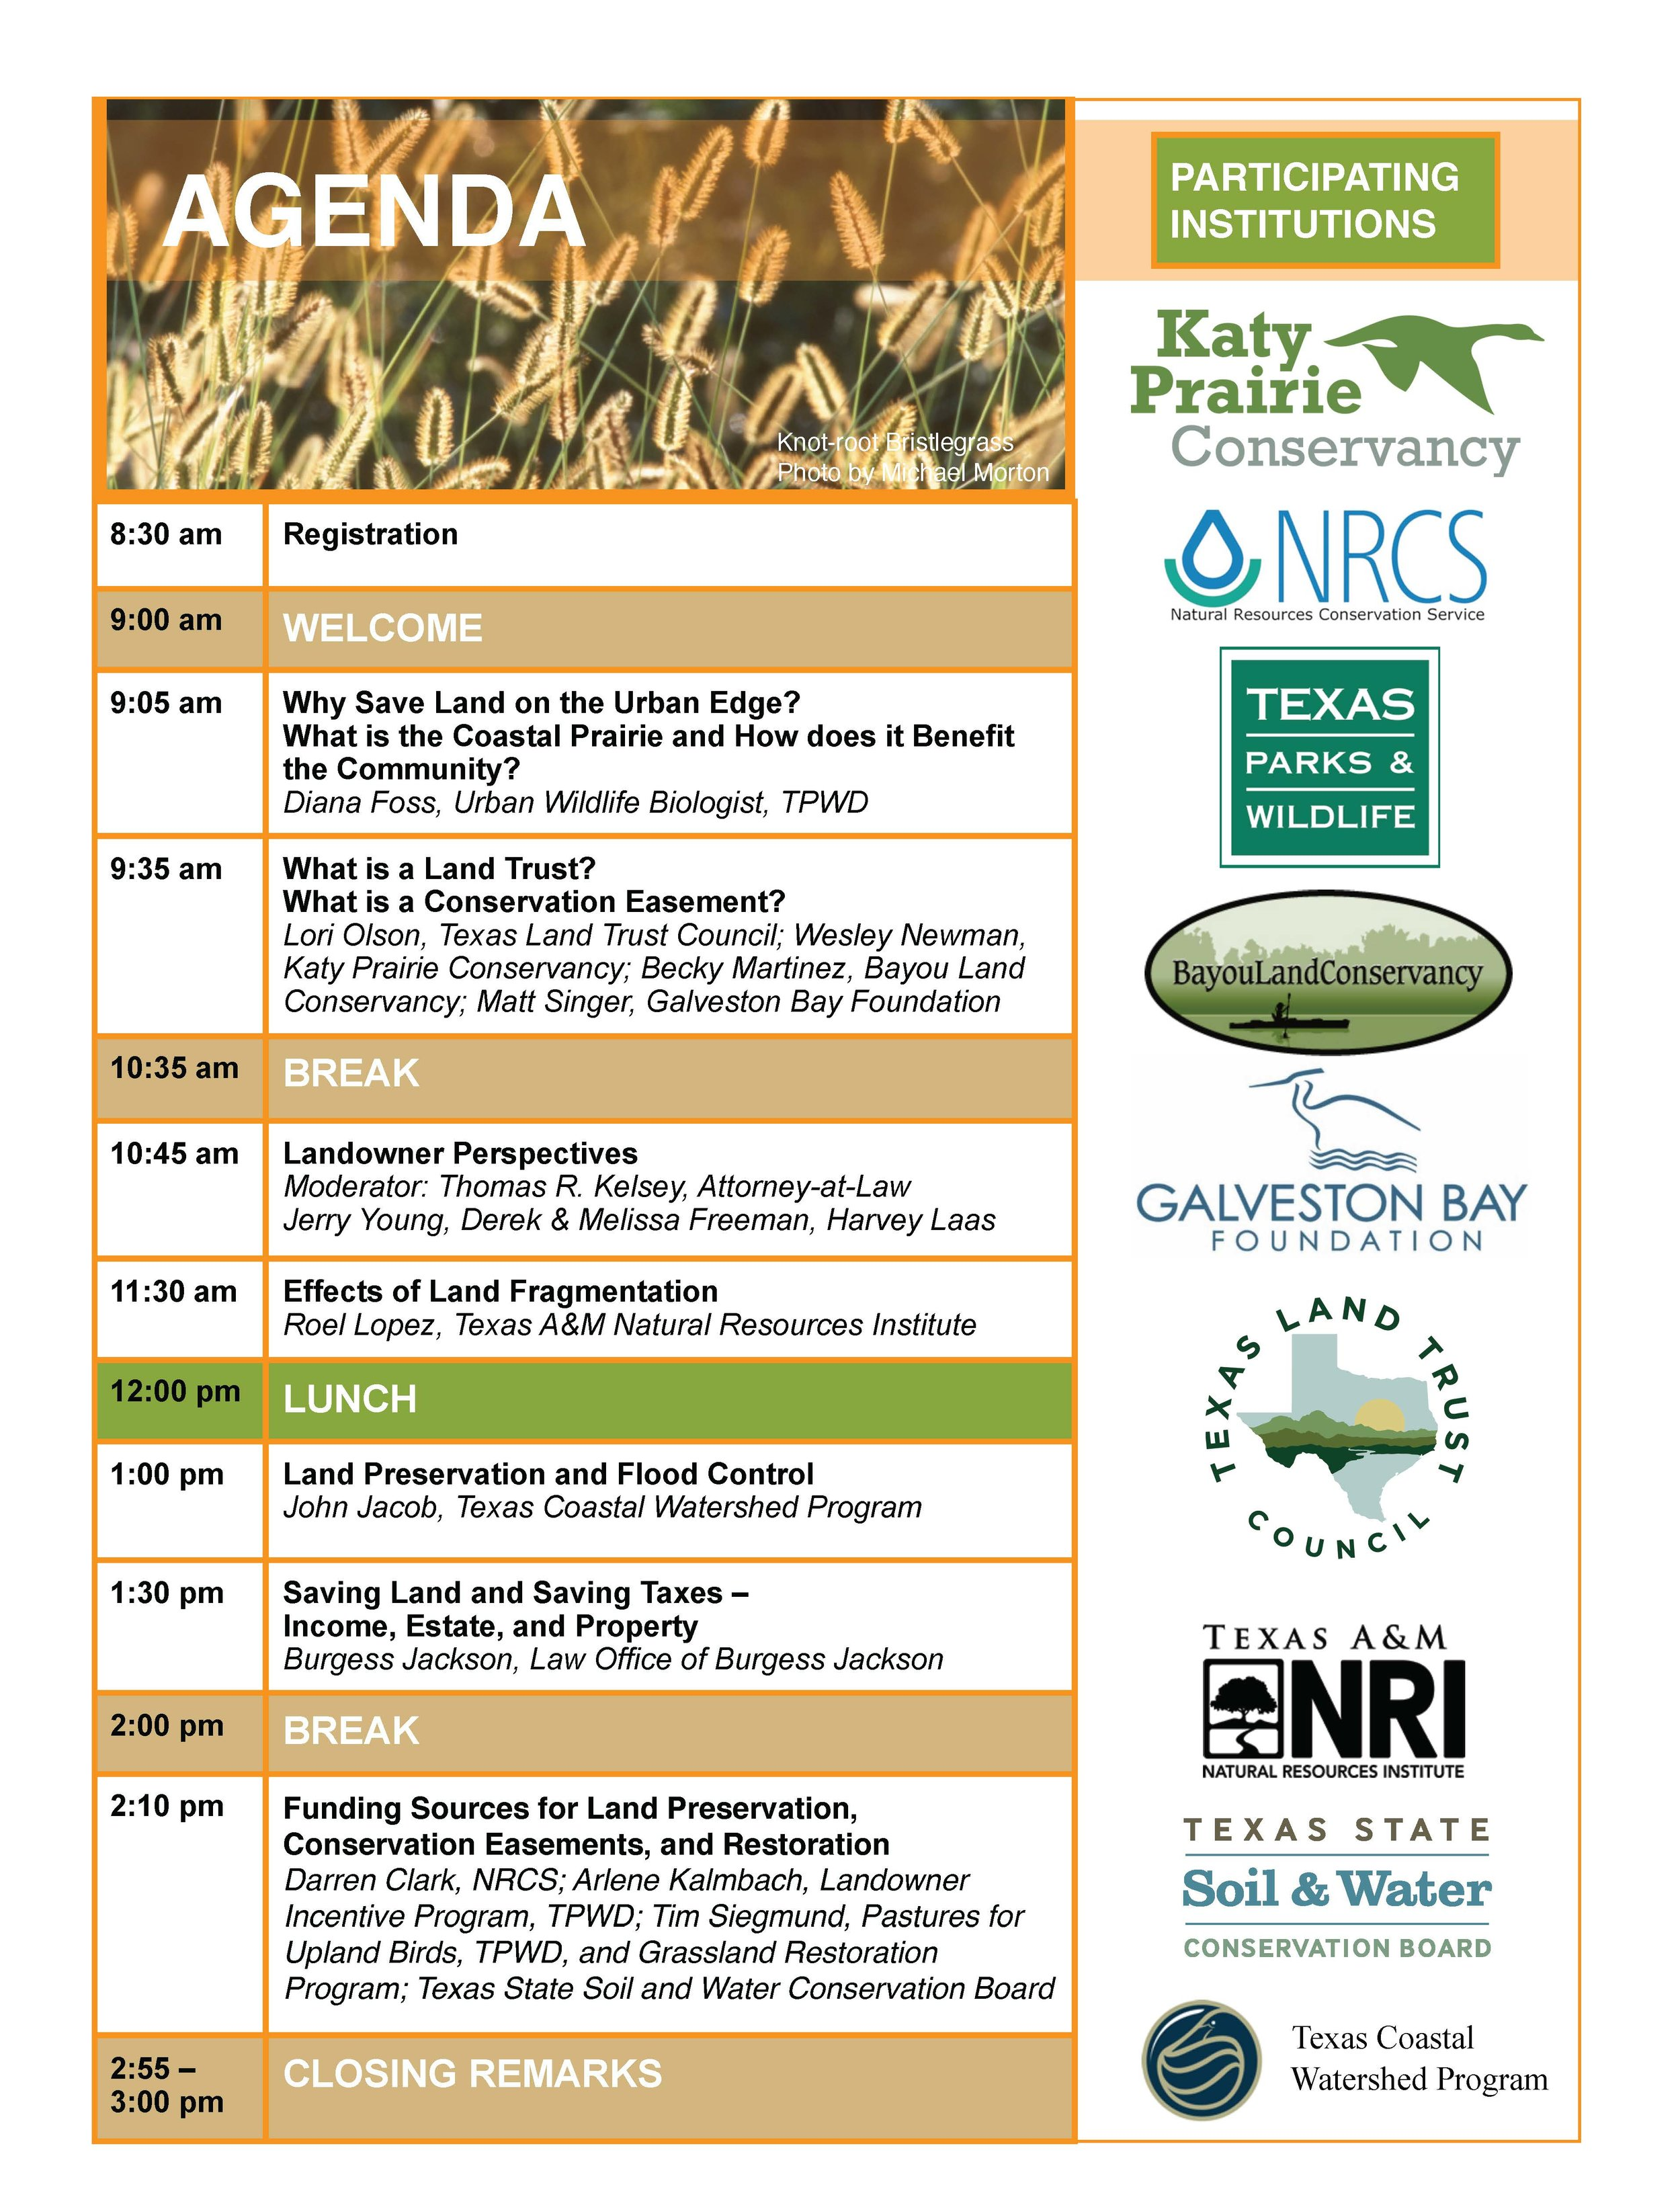 2017 Conservation Easement Flyer and Agenda 09.18.2017_Page_2.jpg